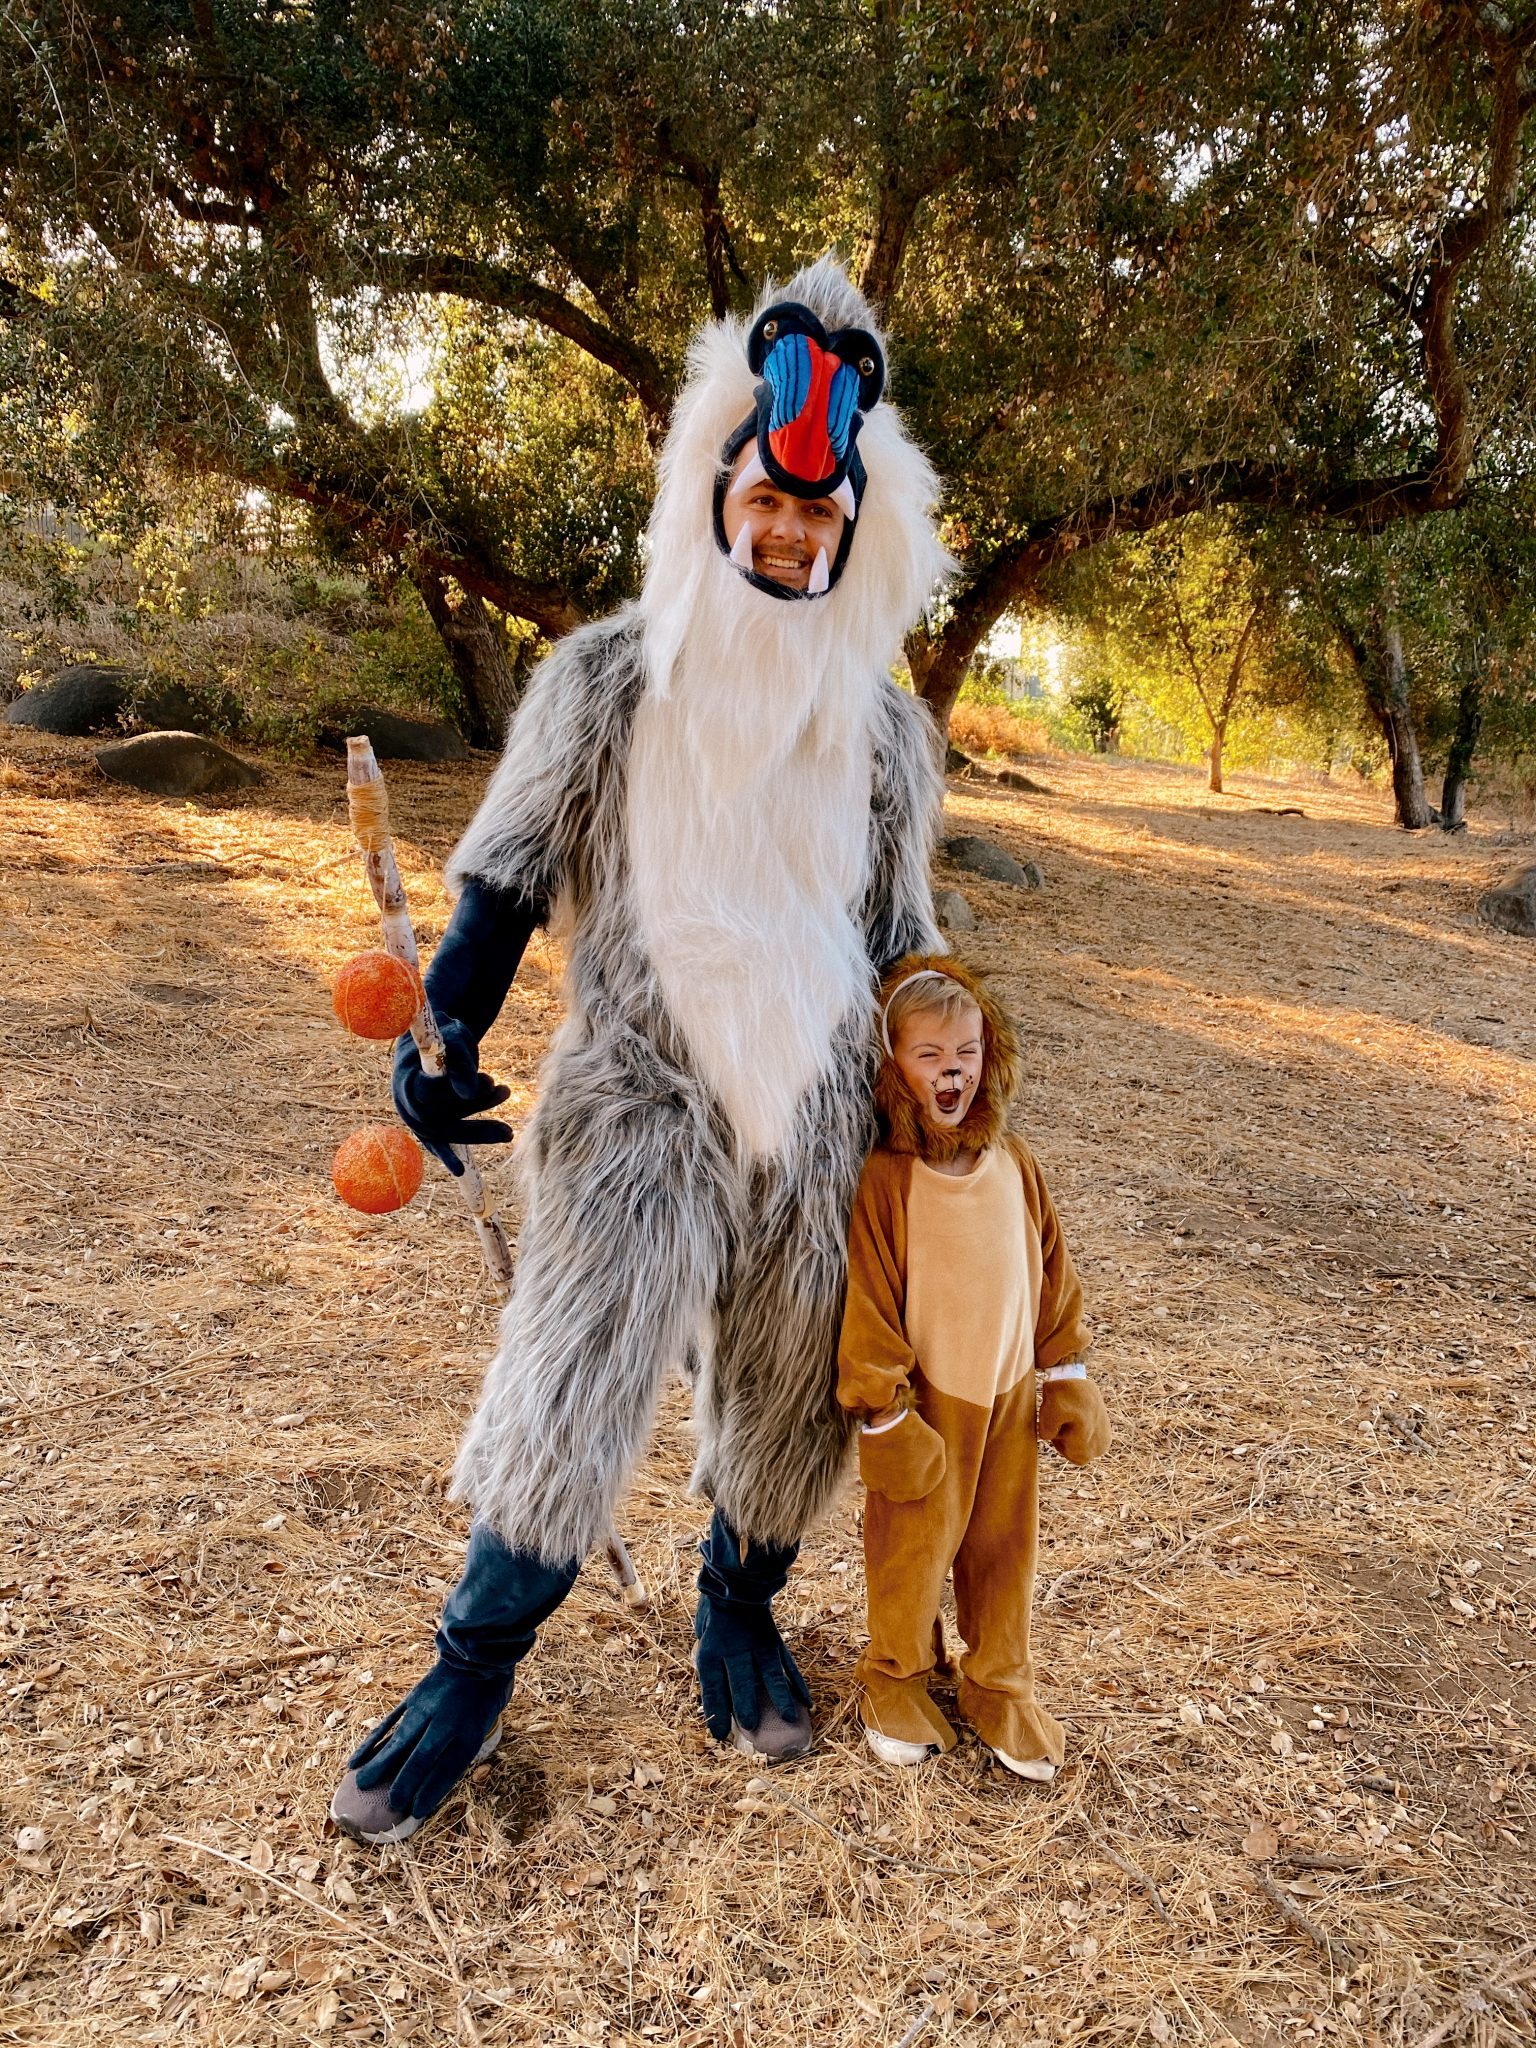 Family Halloween Costumes by popular San Diego lifestyle blog, Navy Grace: image of a dad and son dressed up as Raffiki and Simba from The Lion King.